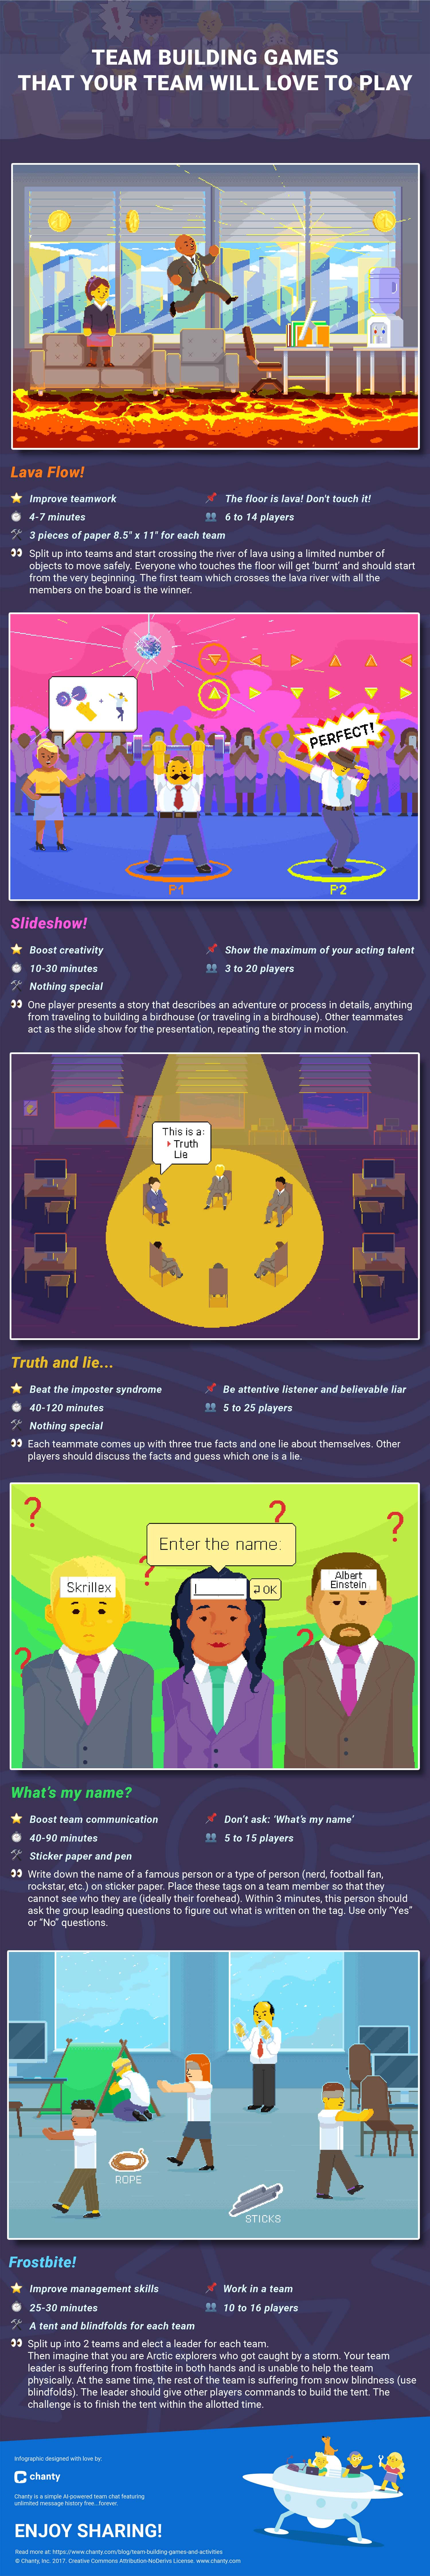 Team-Building Games That Your Team Will Love to Play